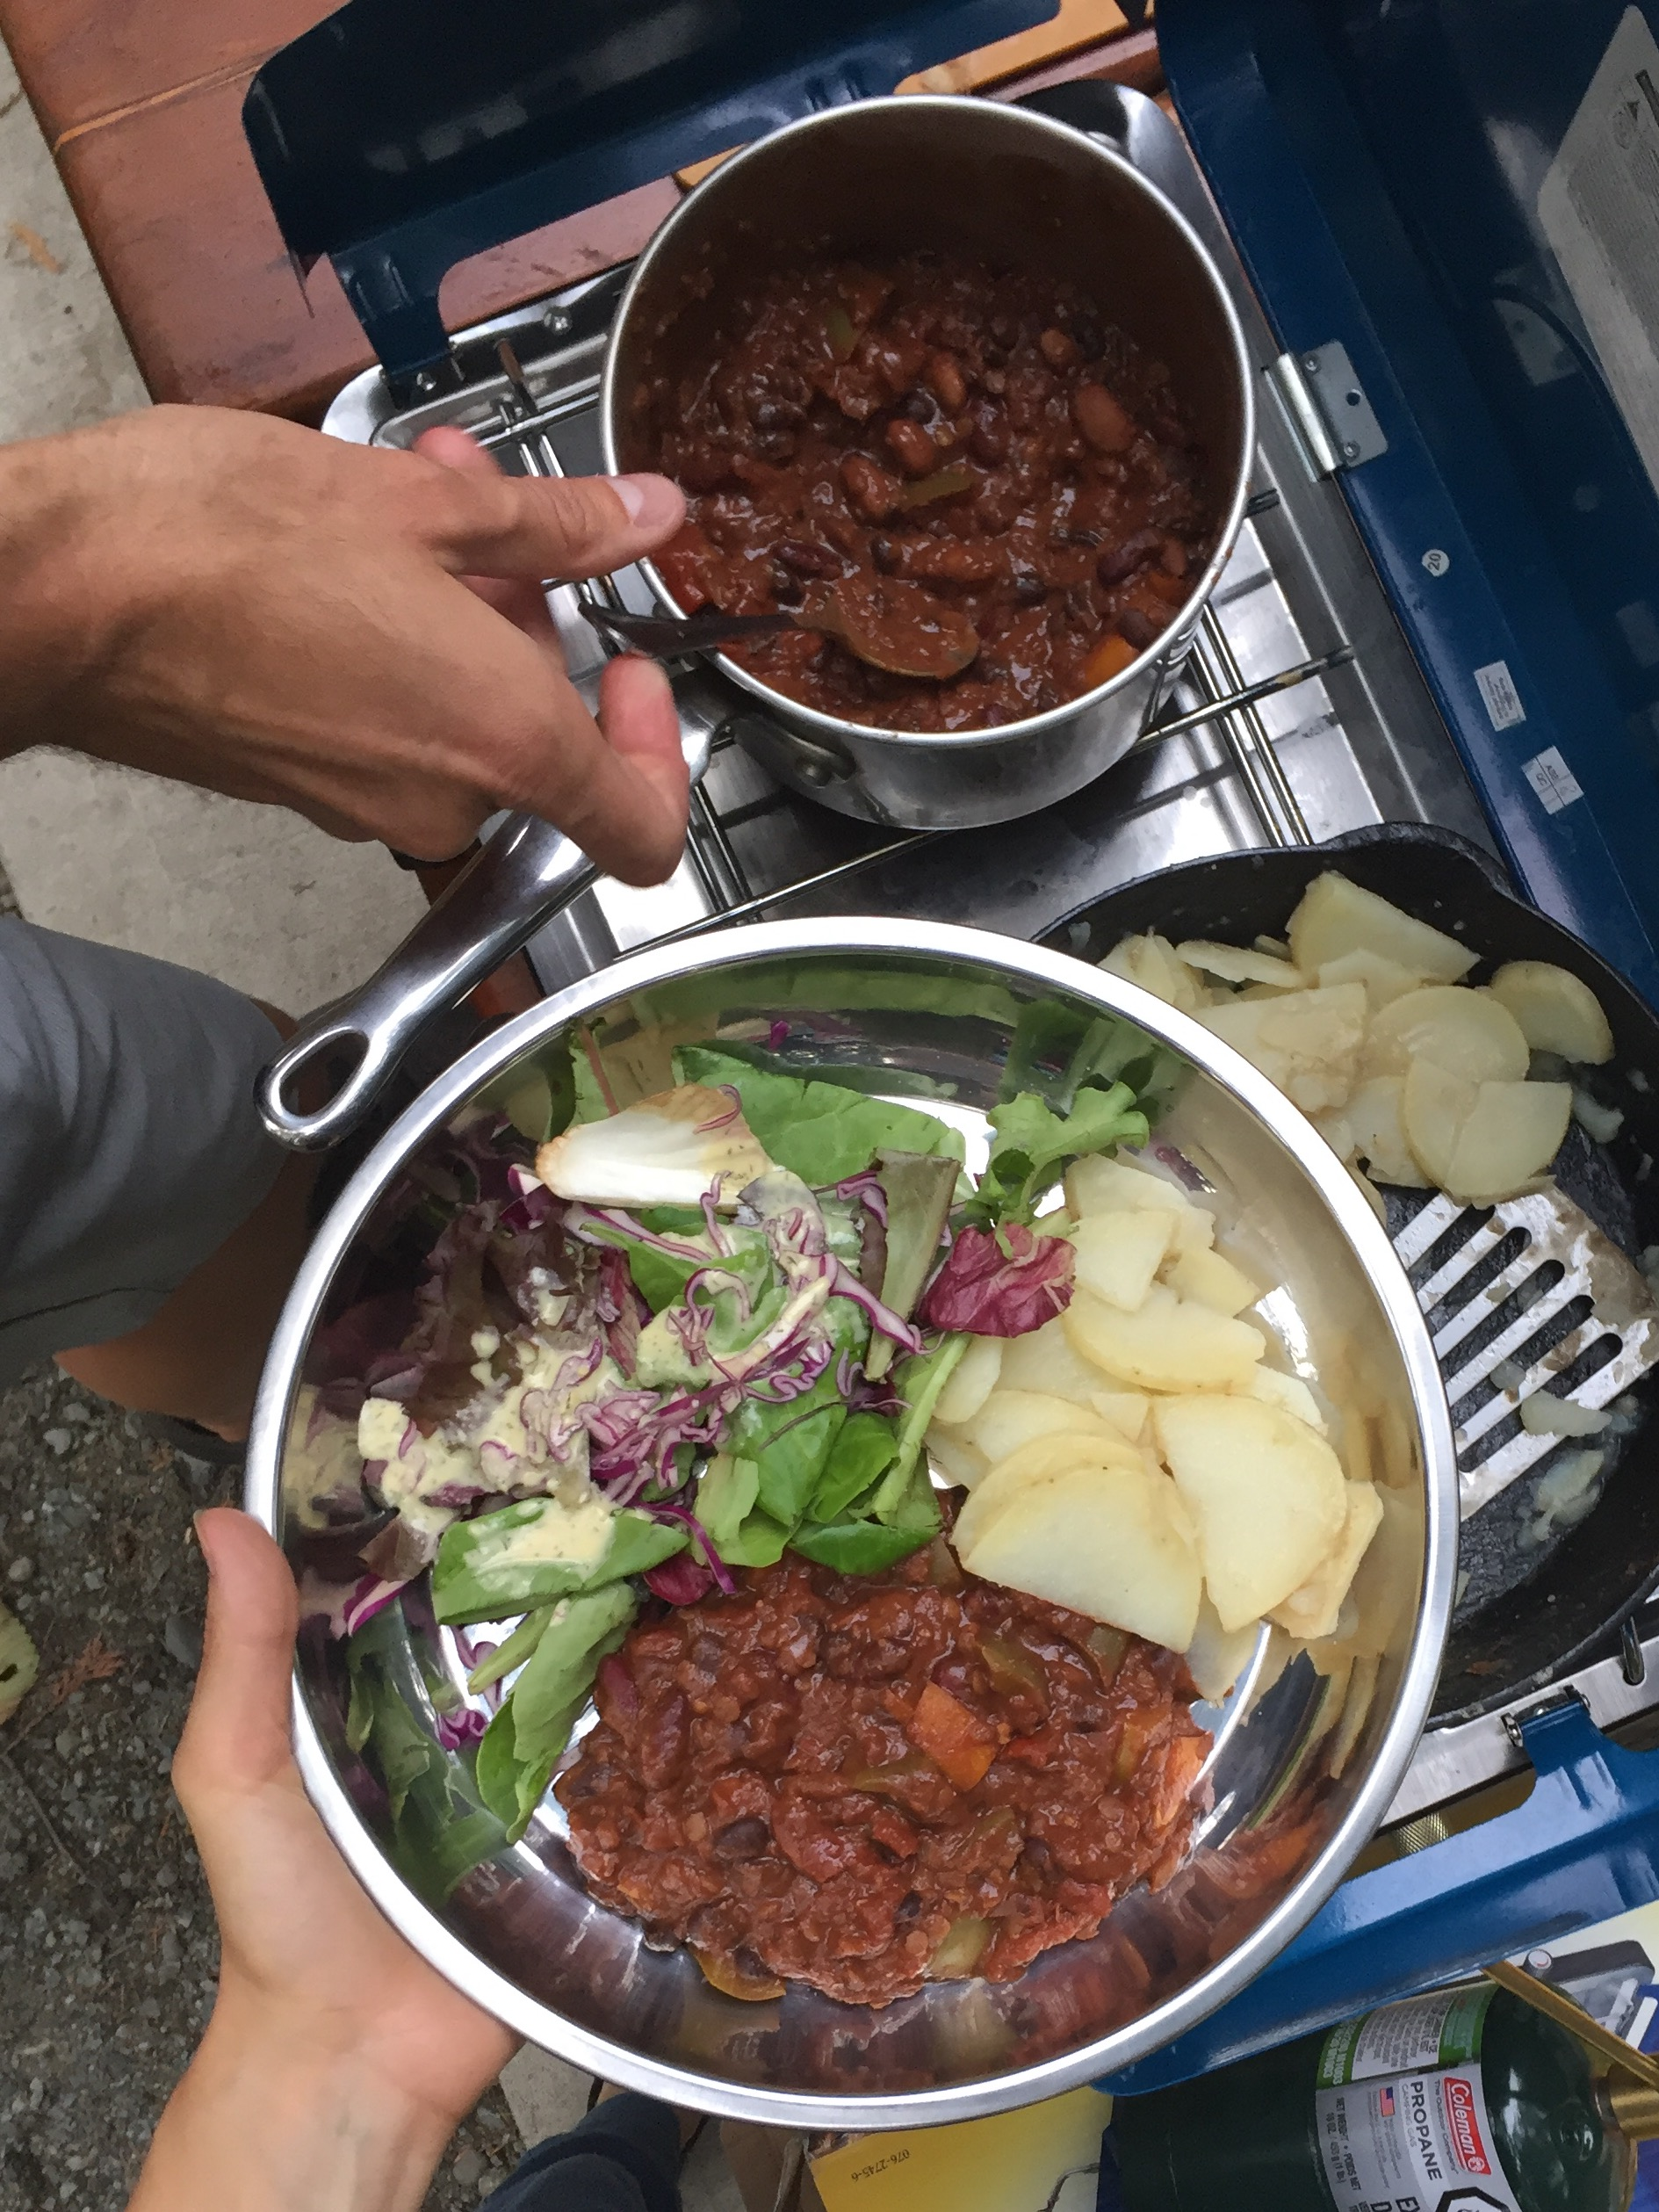 Chili, potatoes, salad—this is actually more involved than usual